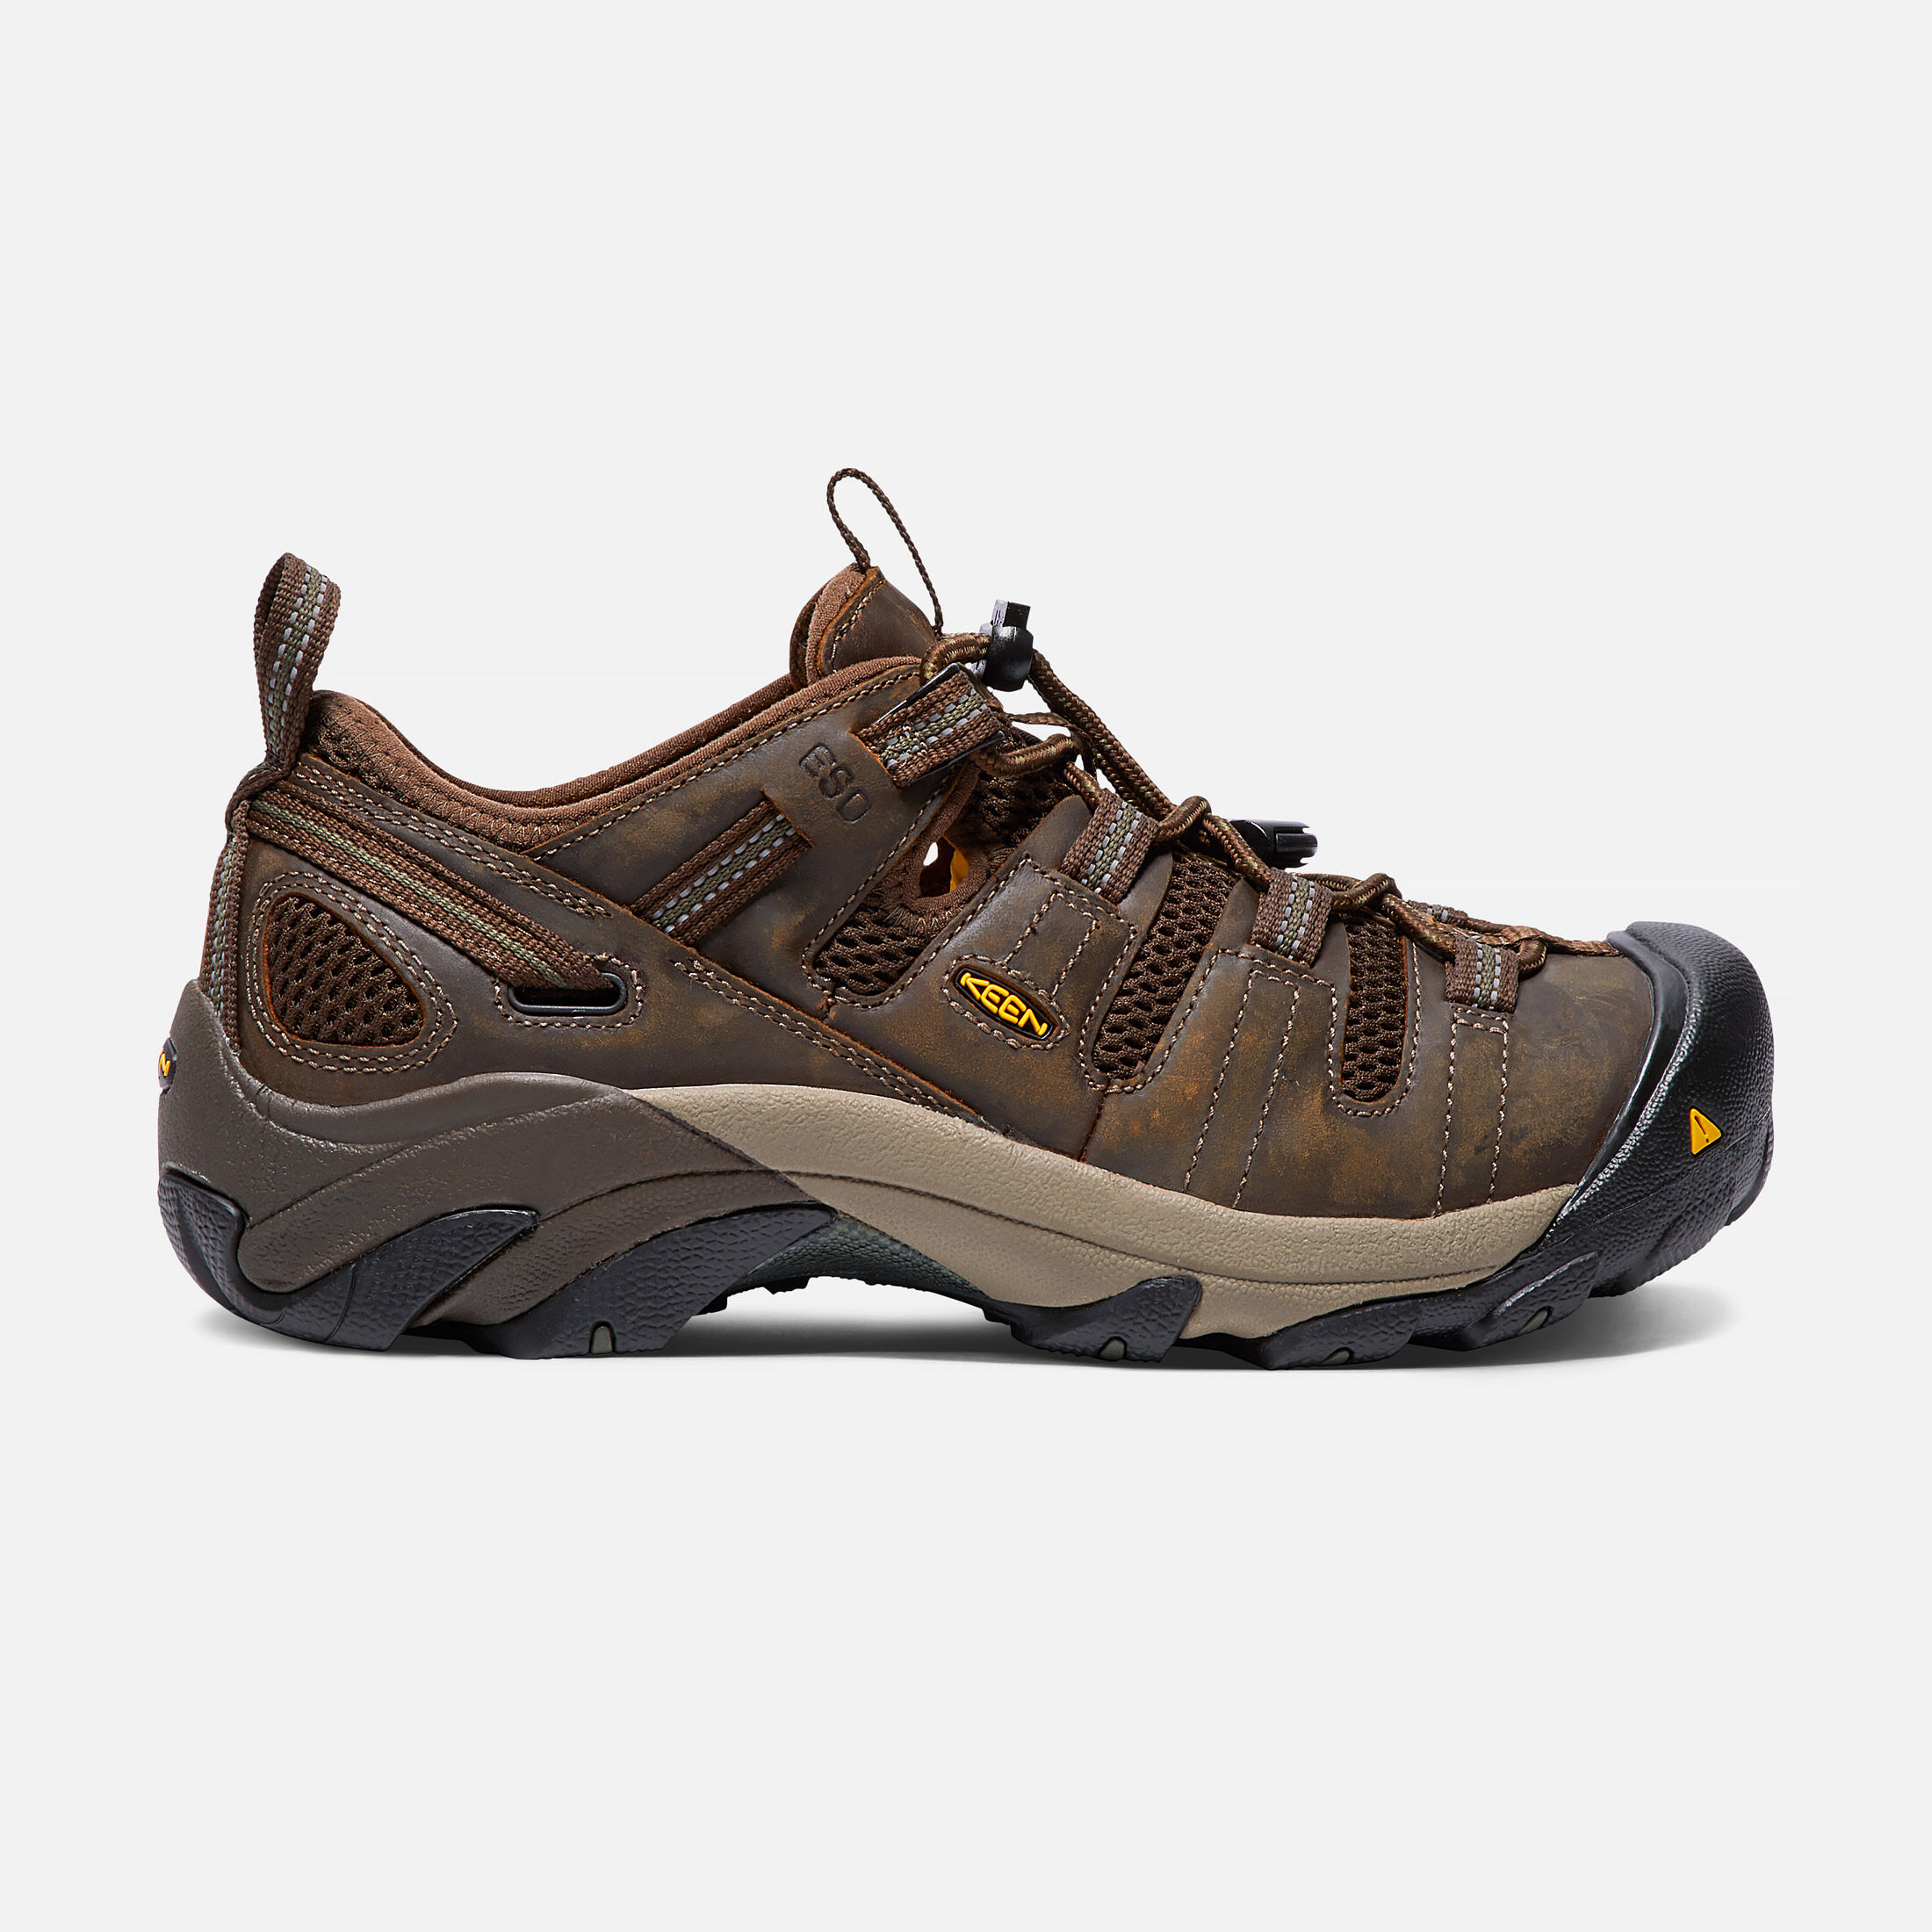 Keen Shoes History